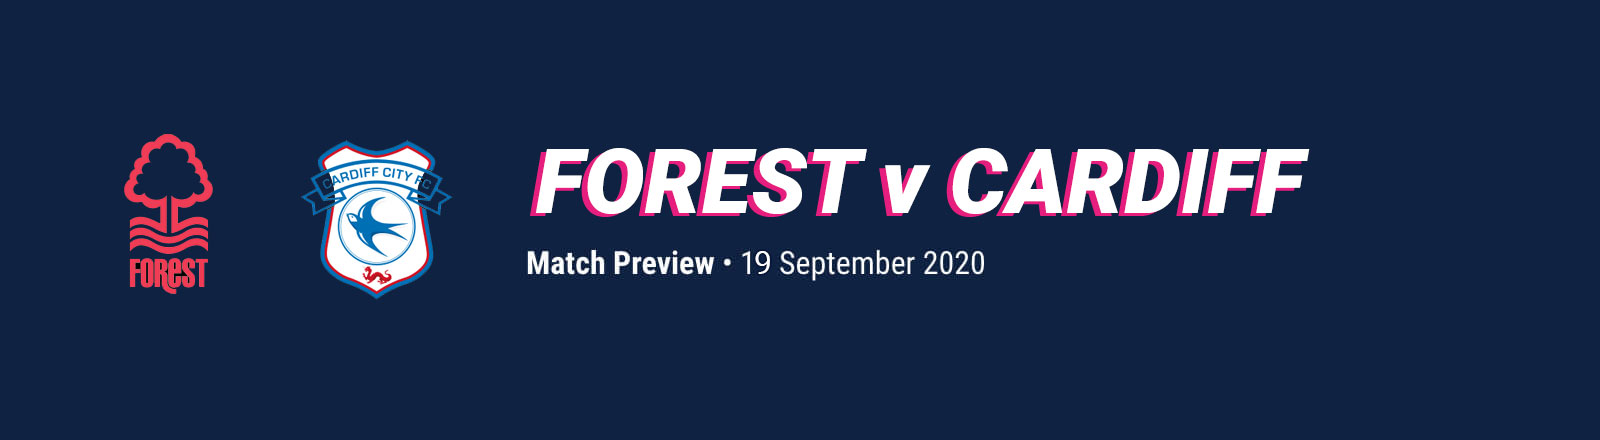 Nottingham Forest vs Cardiff Match Preview